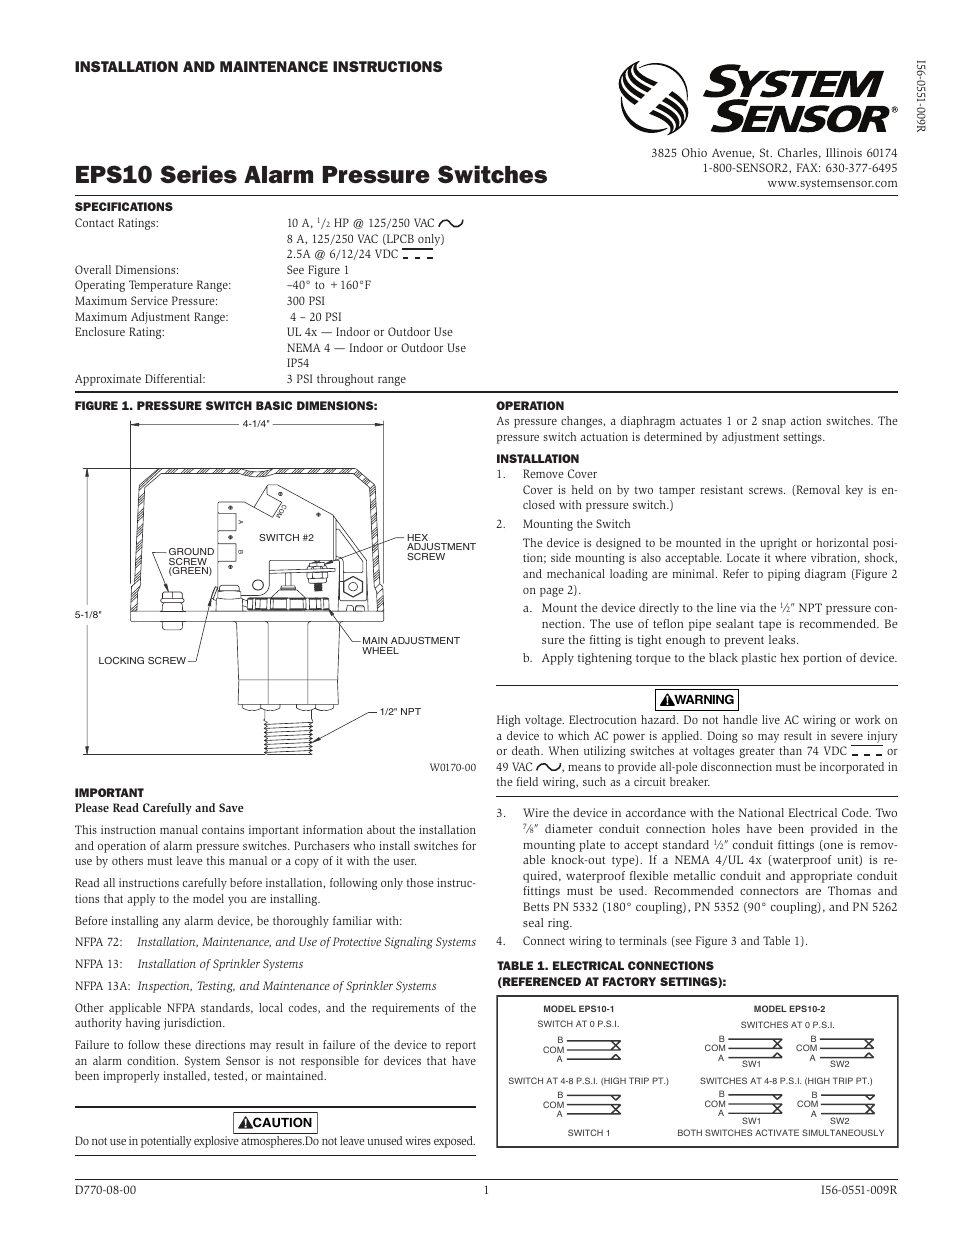 System Sensor Eps10 1 And 2 User Manual Pages How To Wire The By Using A High Power Switch Designed